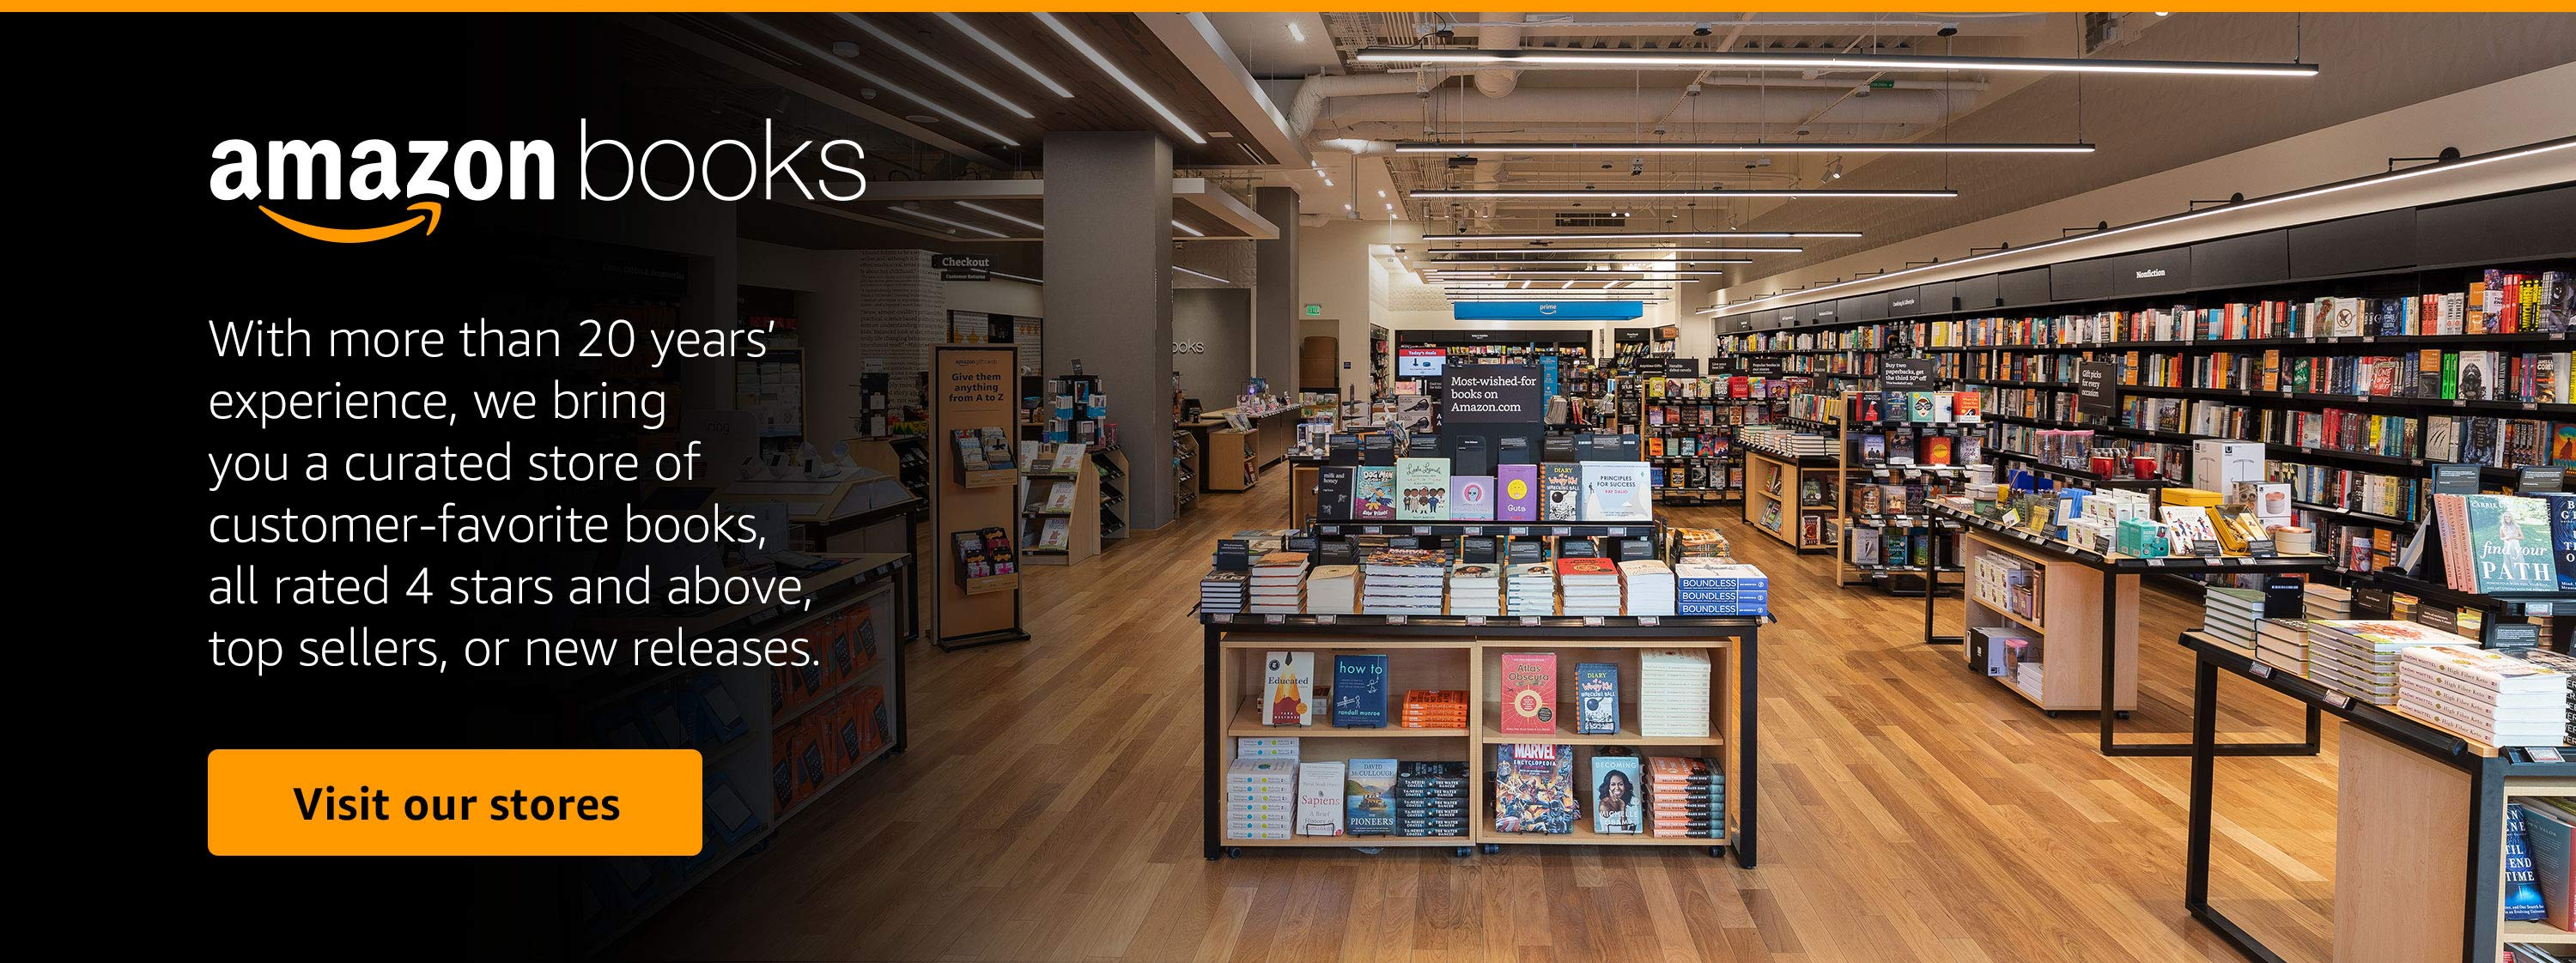 a curated store of customer favorite books